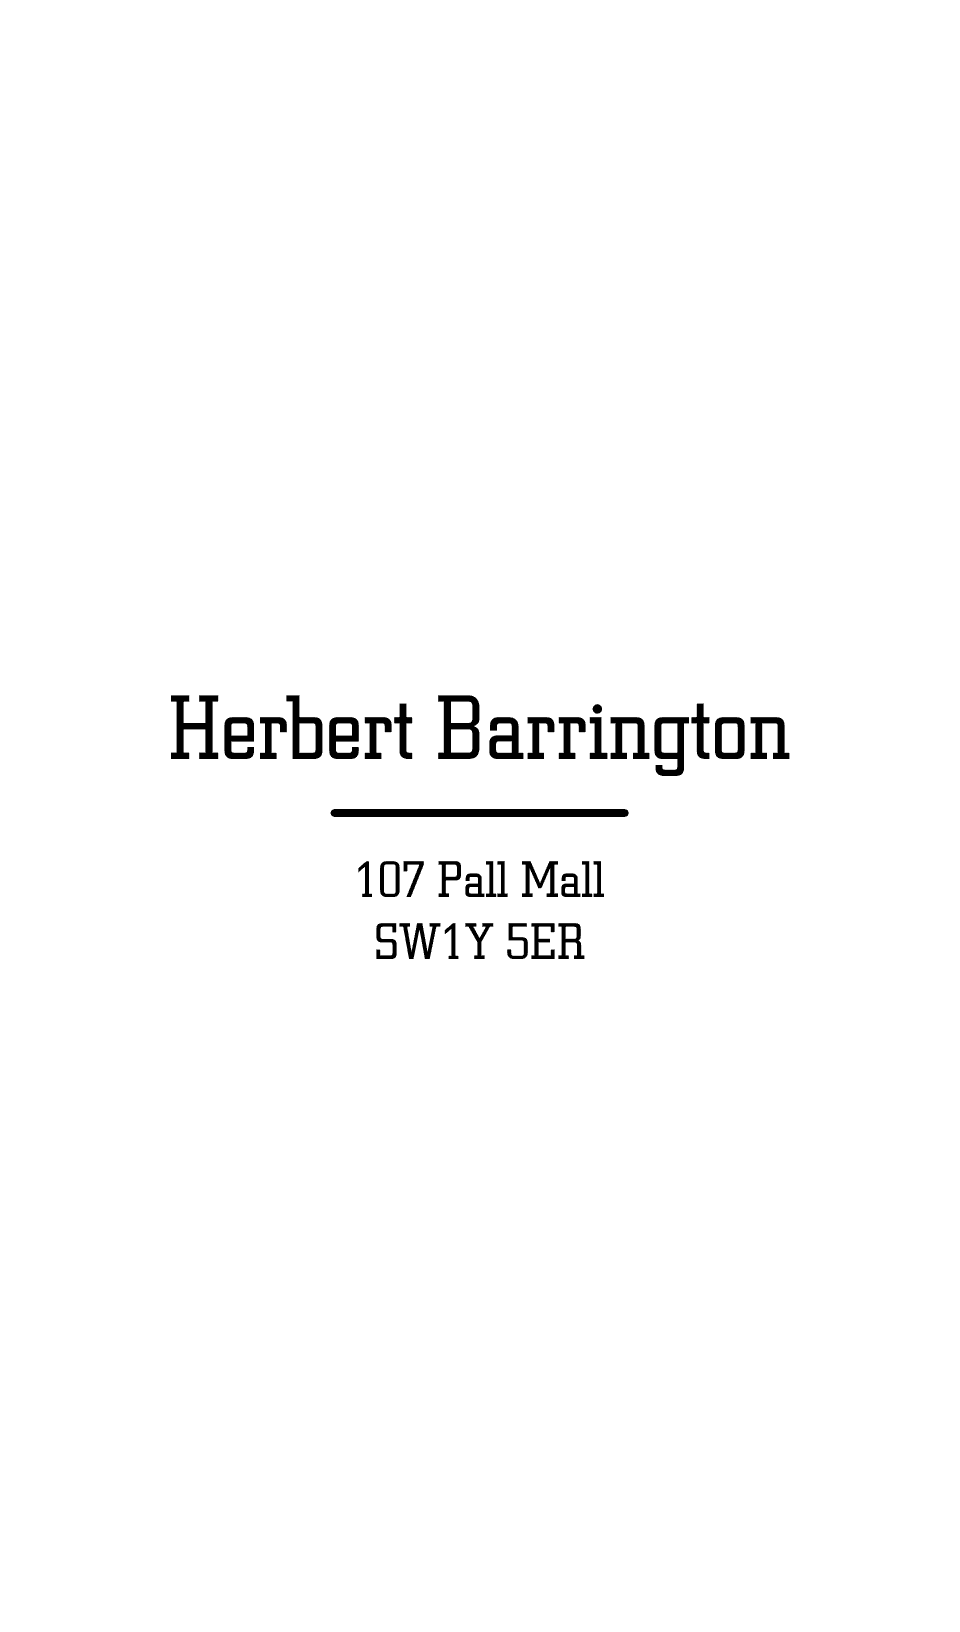 Personalised Stationery : Berkeley : Barrington